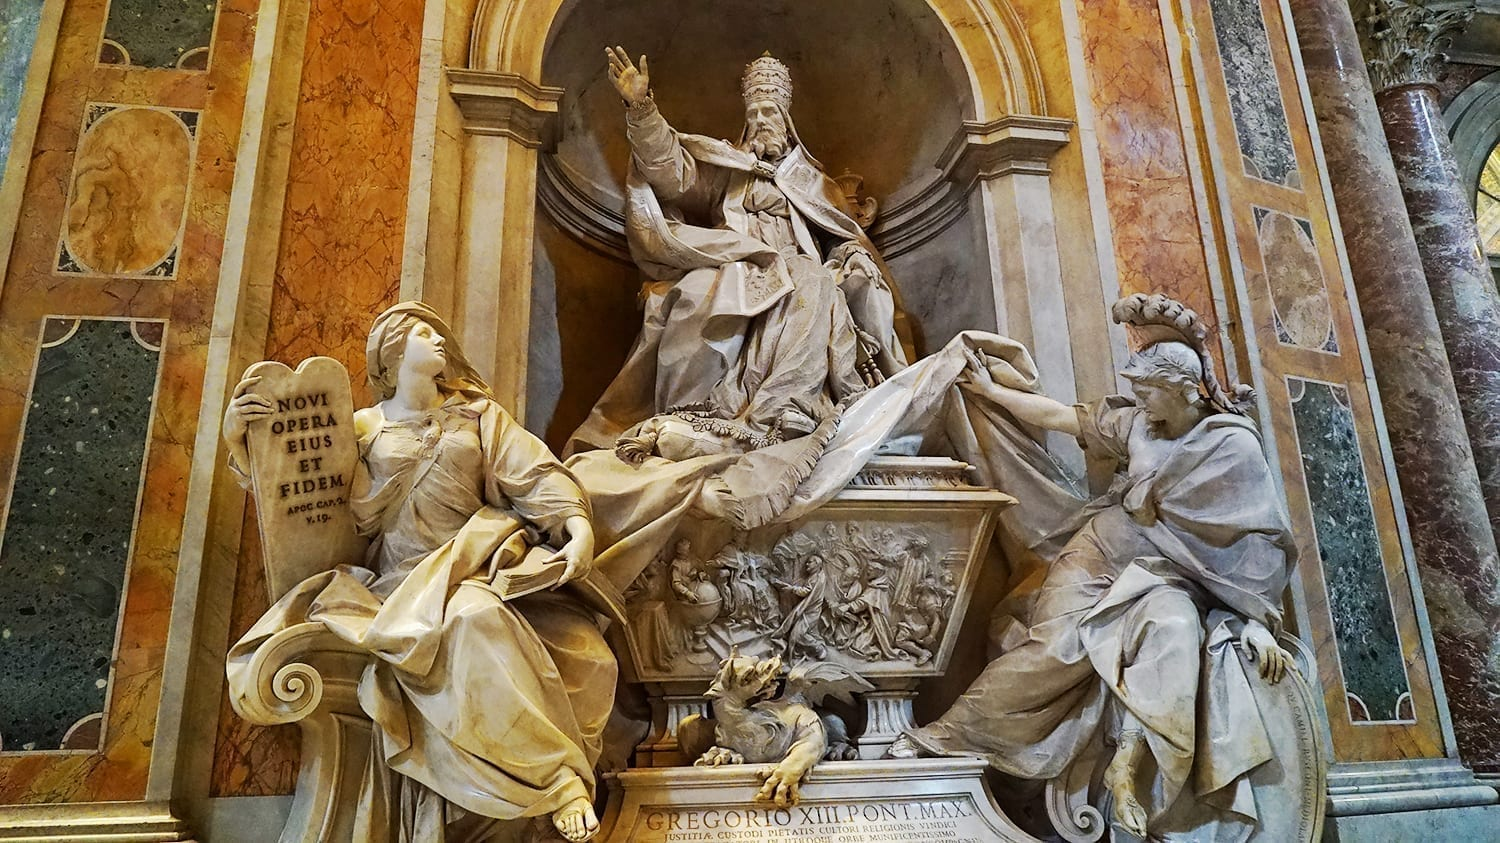 Statues Inside St Peter's Basilica